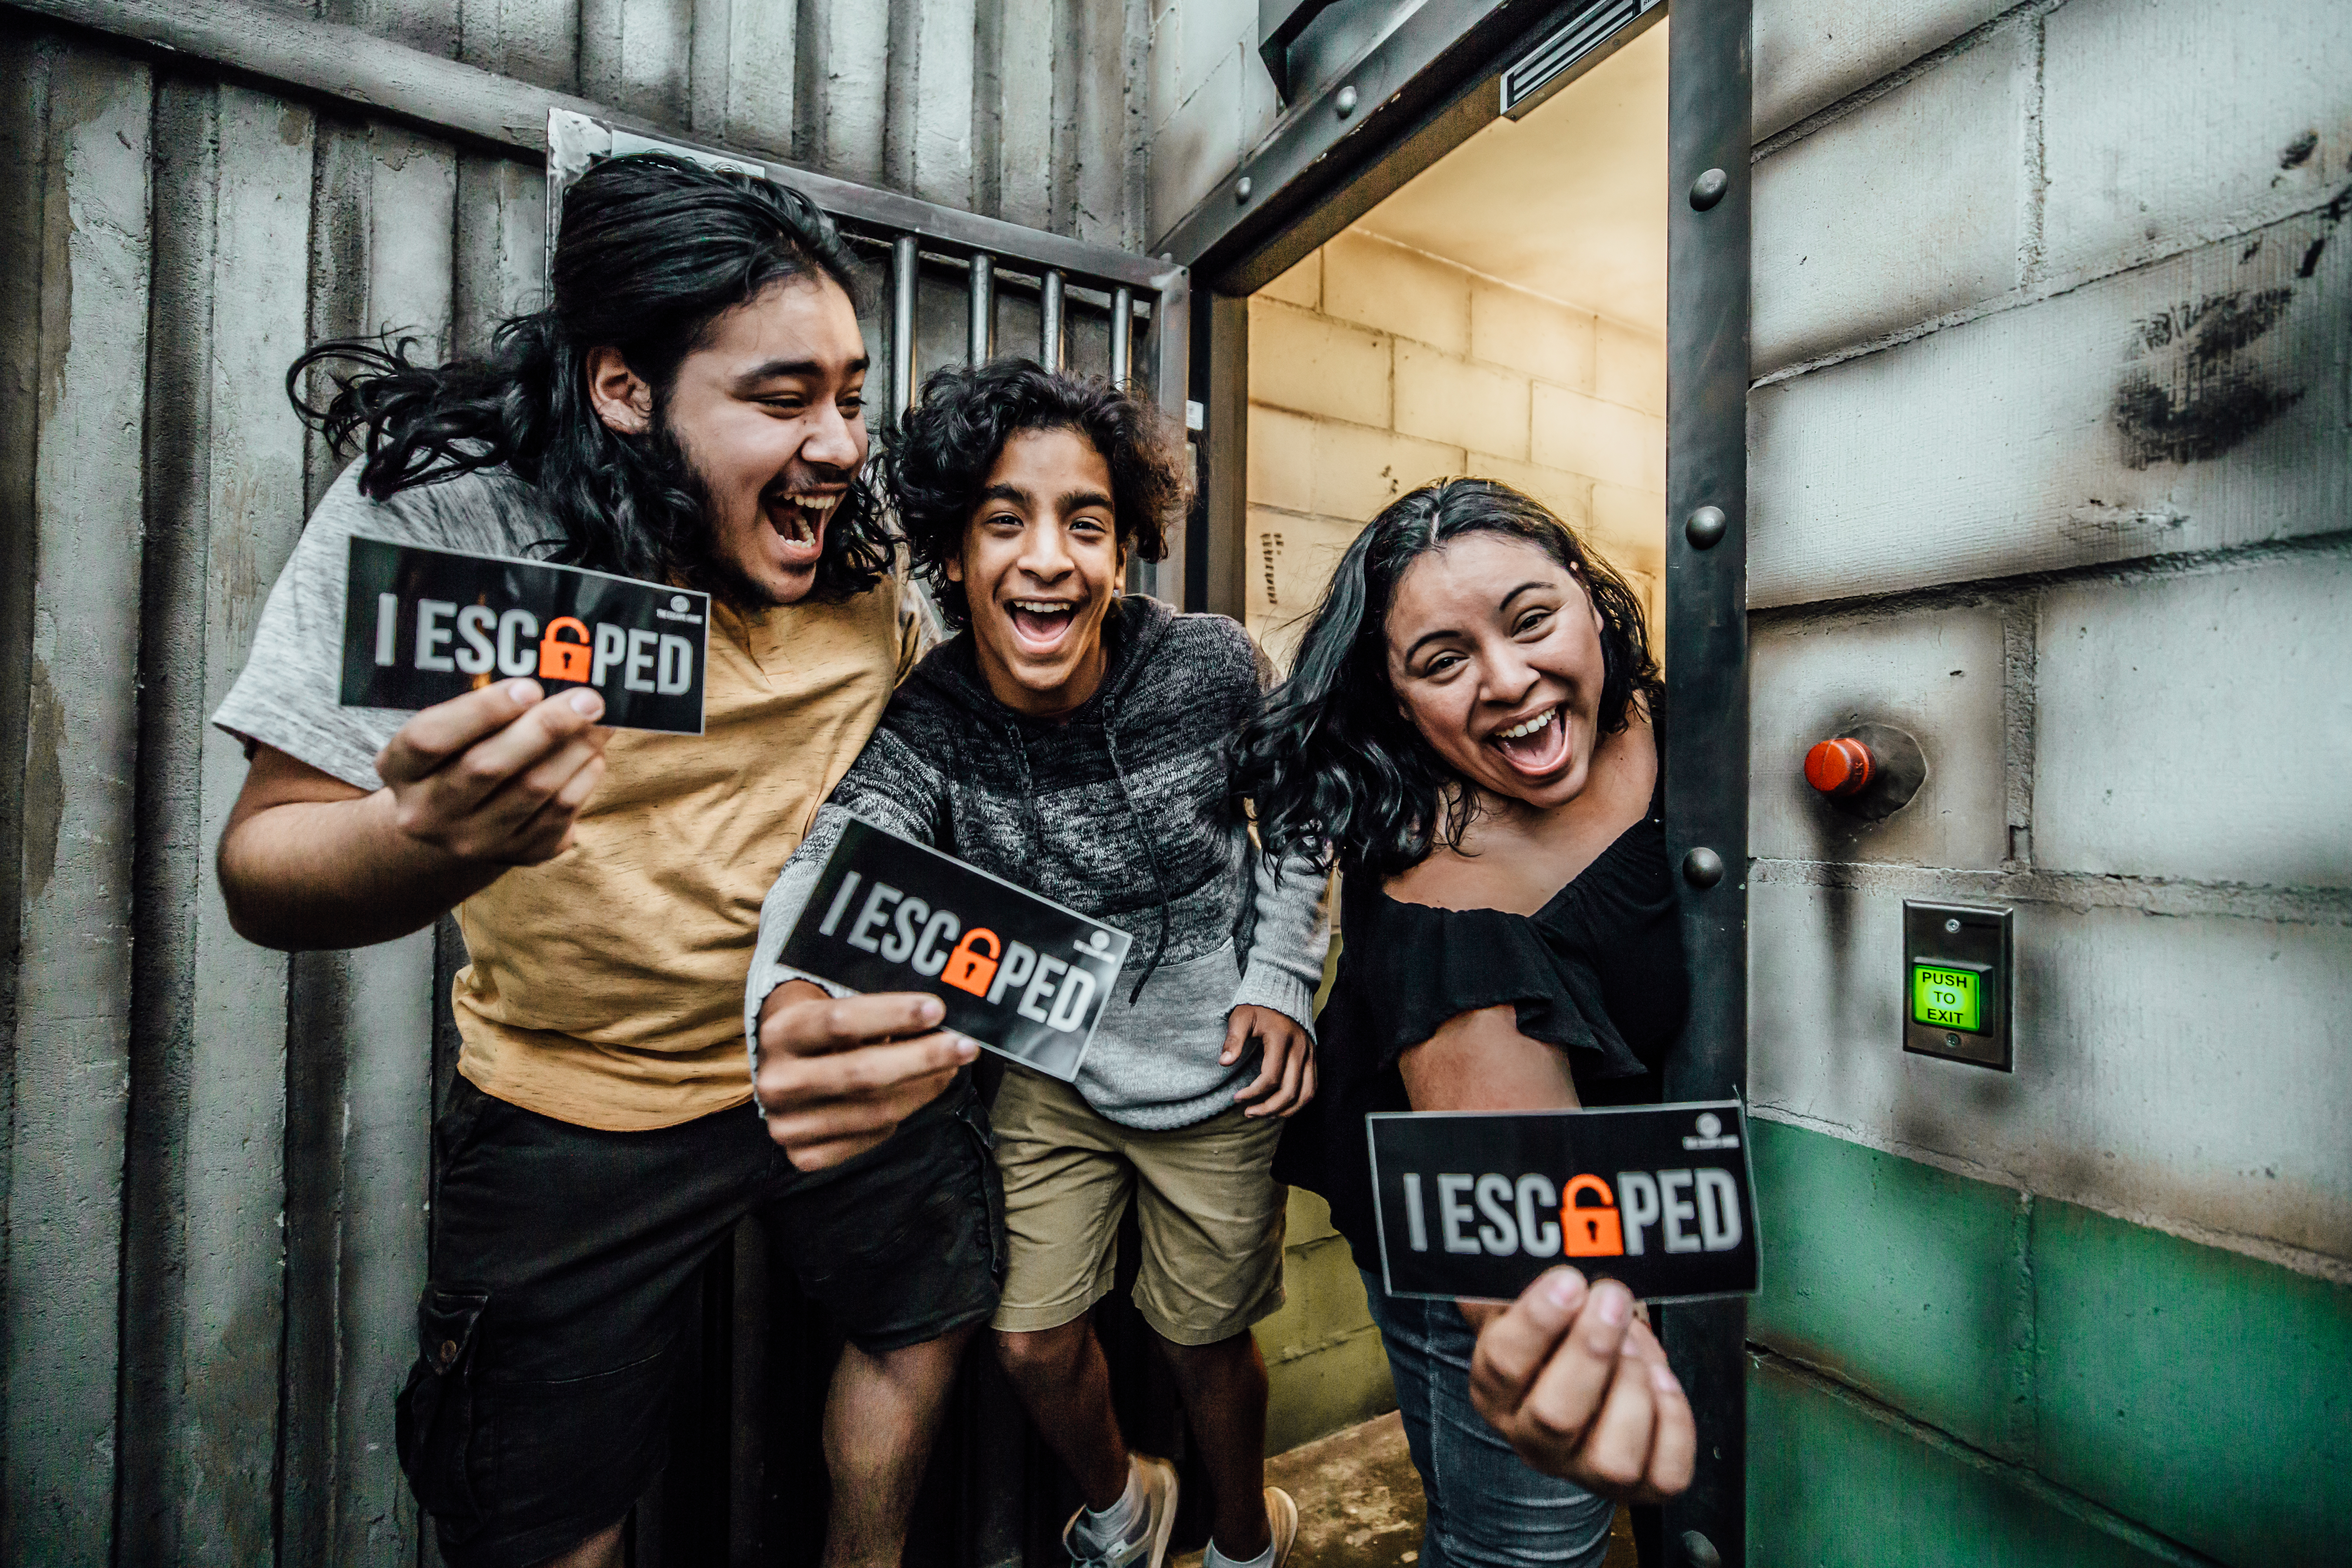 Clues To Get Out Of An Escape Room The Escape Game